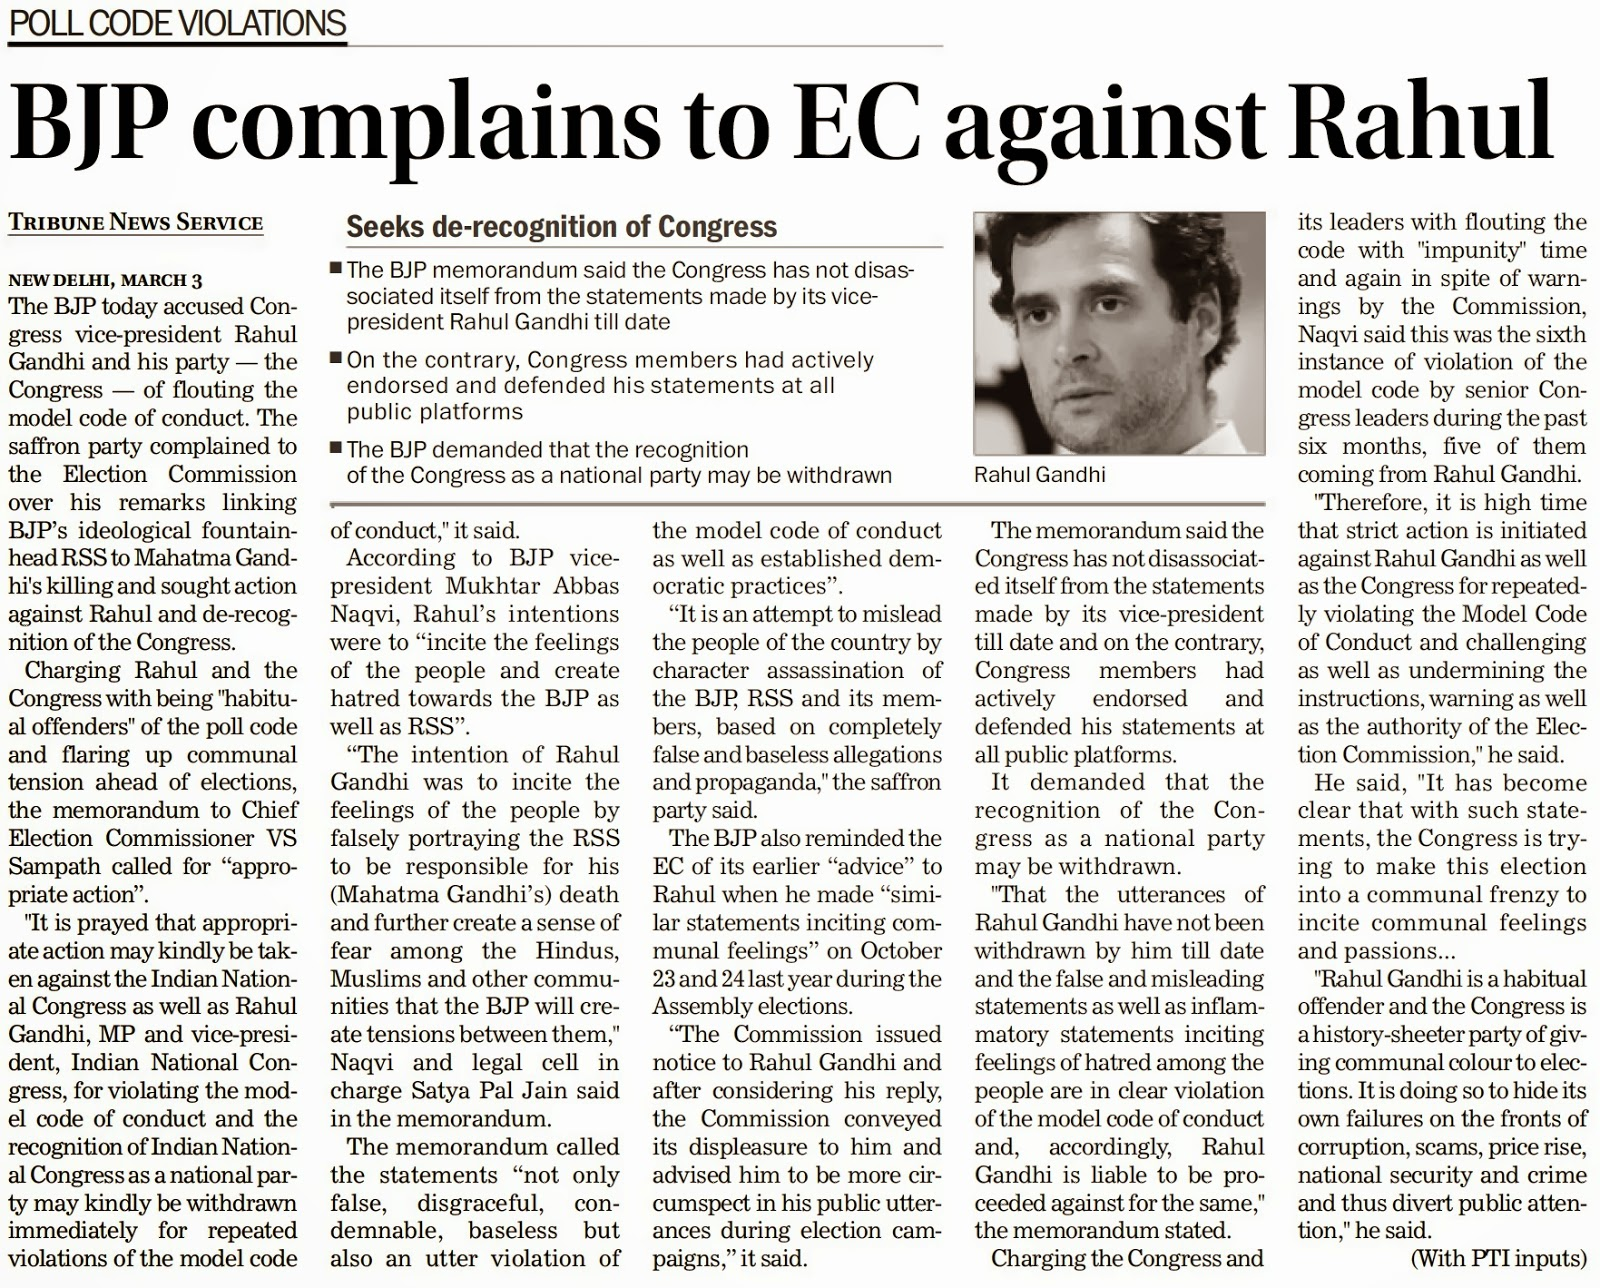 BJP complains to EC against Rahul